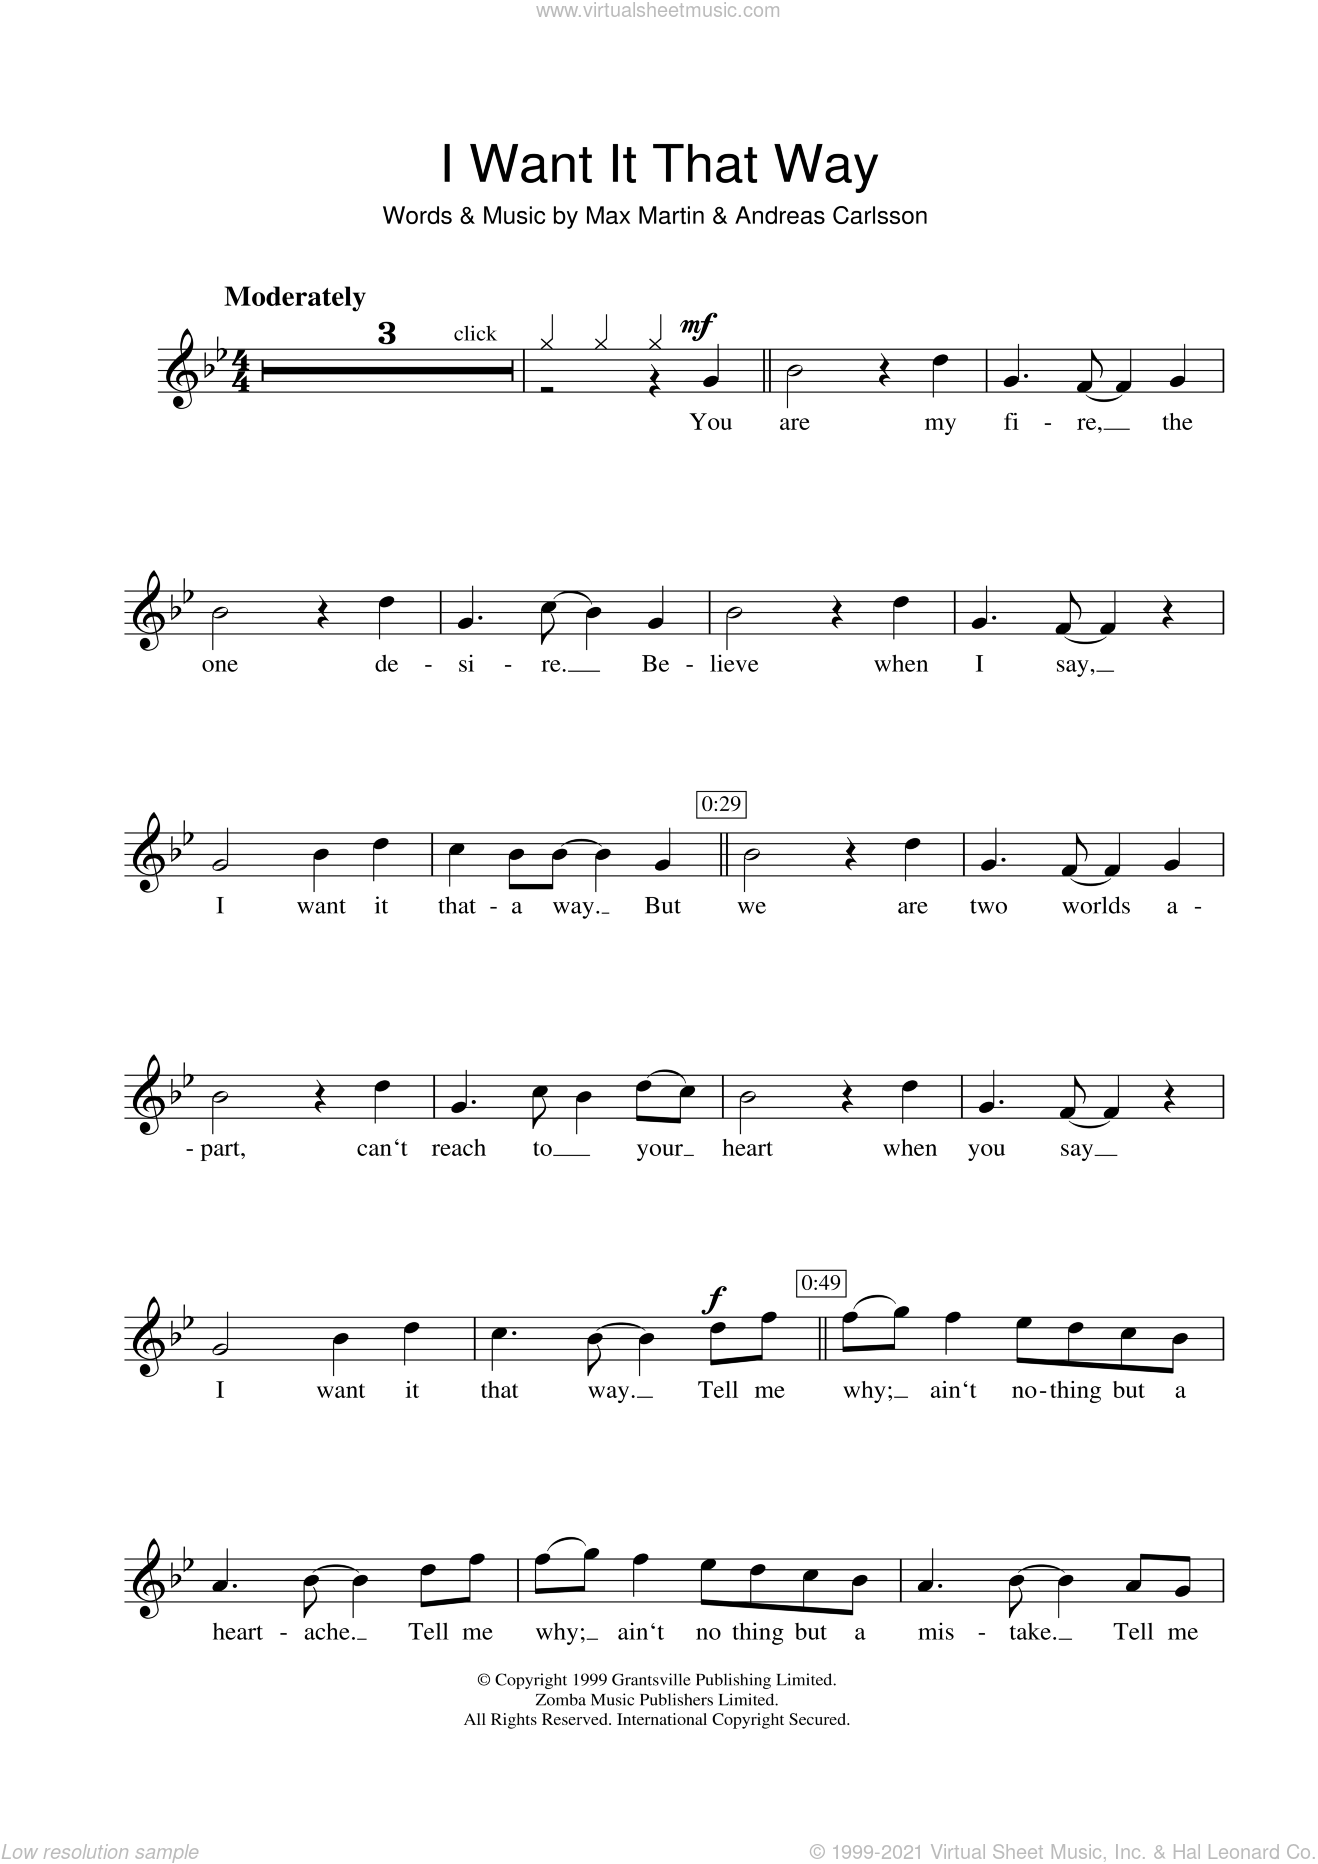 I Want It That Way sheet music for flute solo by Backstreet Boys, Andreas Carlsson and Max Martin, intermediate